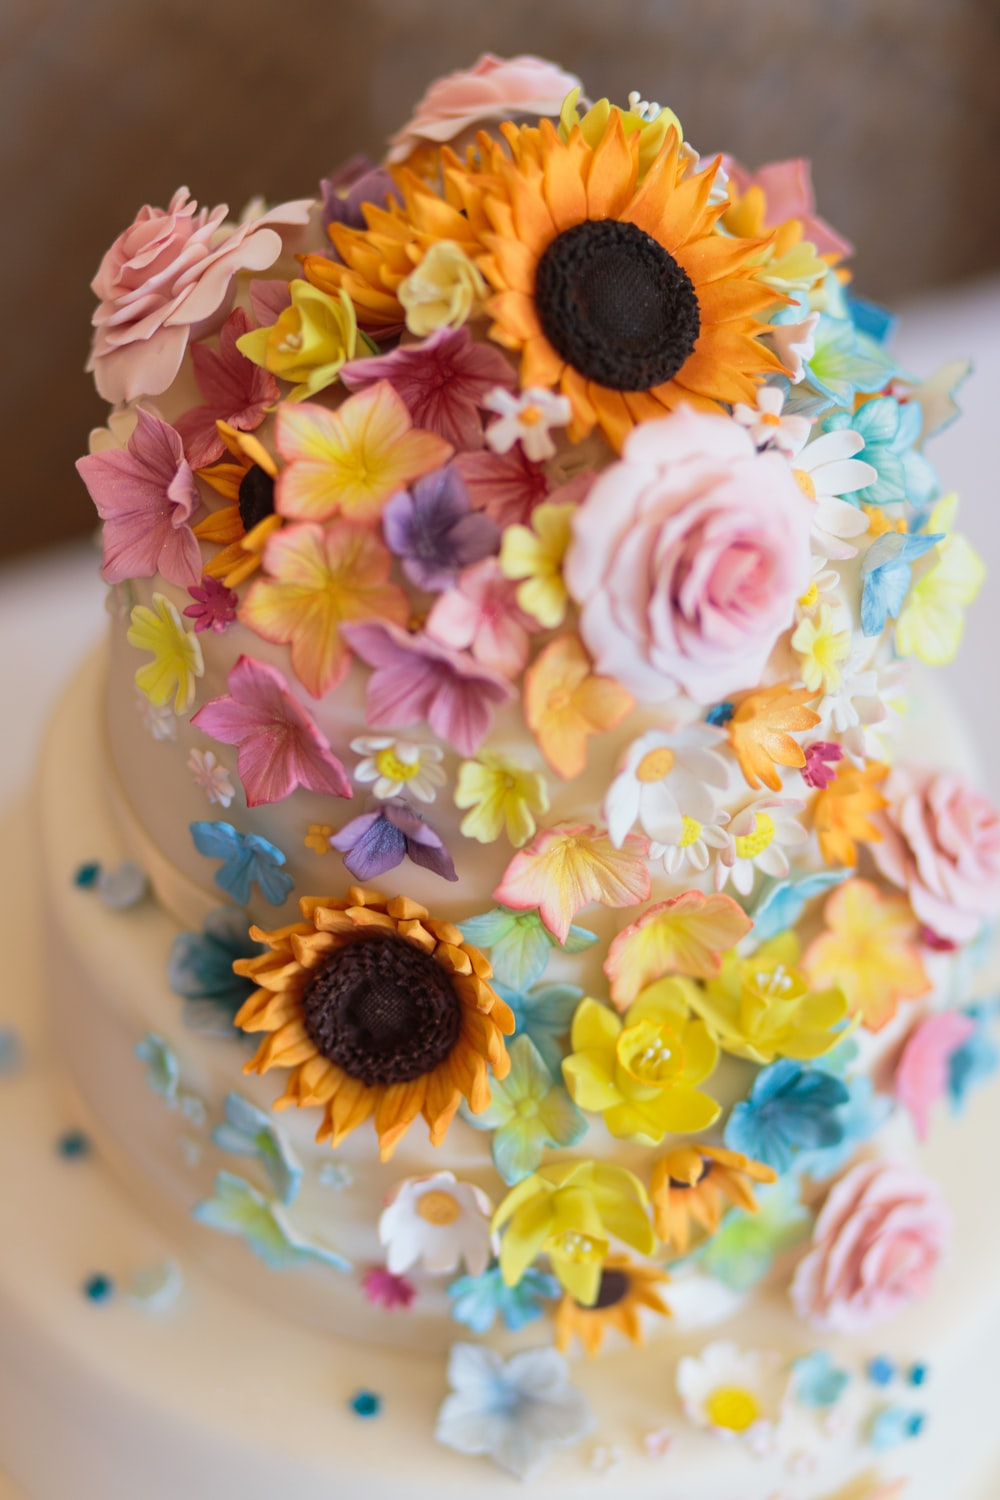 Pleasant 3 Layer Cake With Flowers Accent Photo Free Cake Image On Unsplash Funny Birthday Cards Online Barepcheapnameinfo